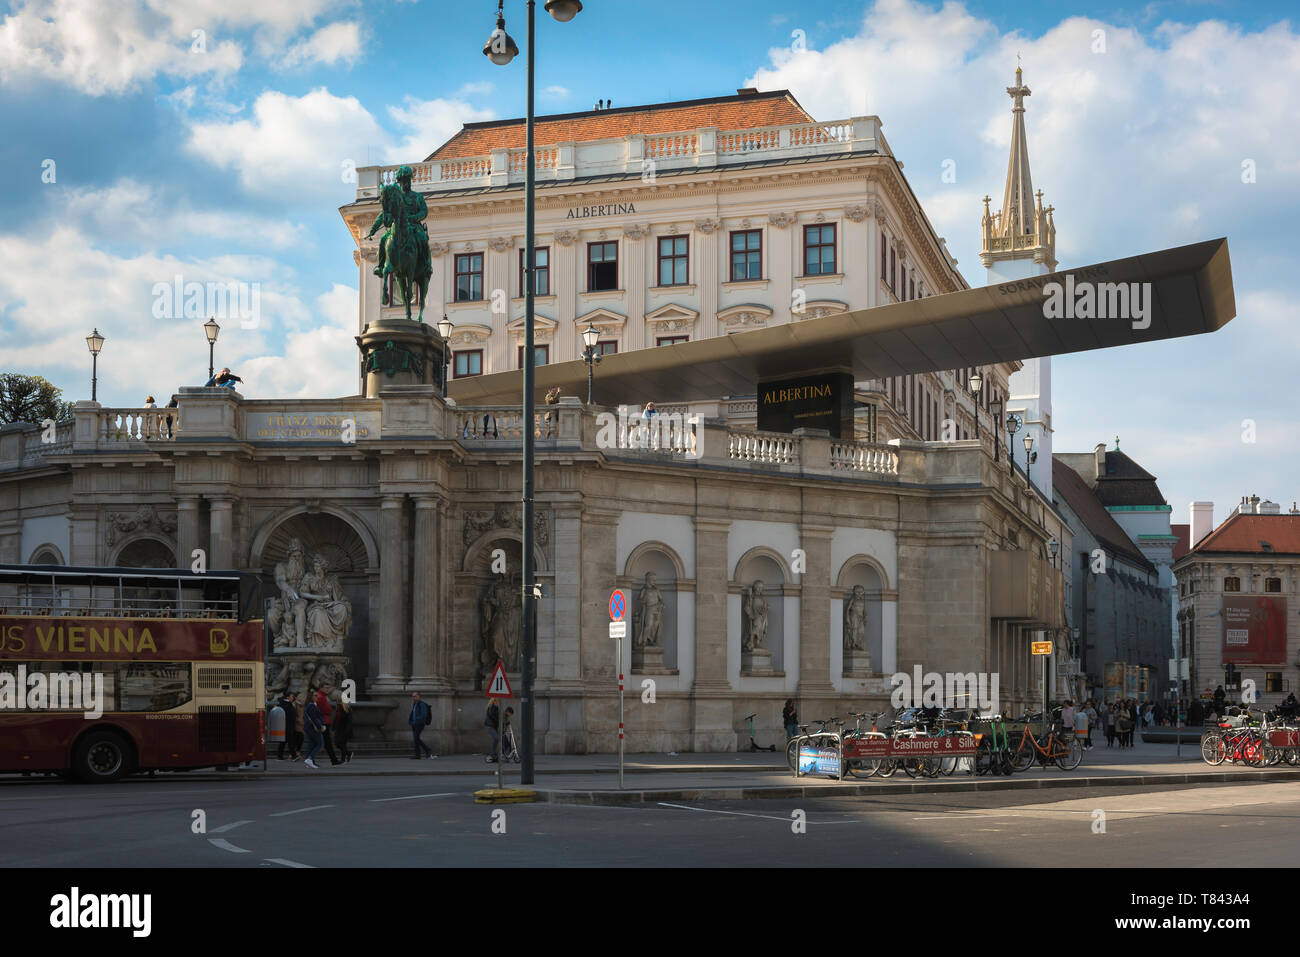 Albertina Vienna, view of the Albertina building - former Habsburg imperial apartments that now house an extensive modern art collection, Austria. Stock Photo